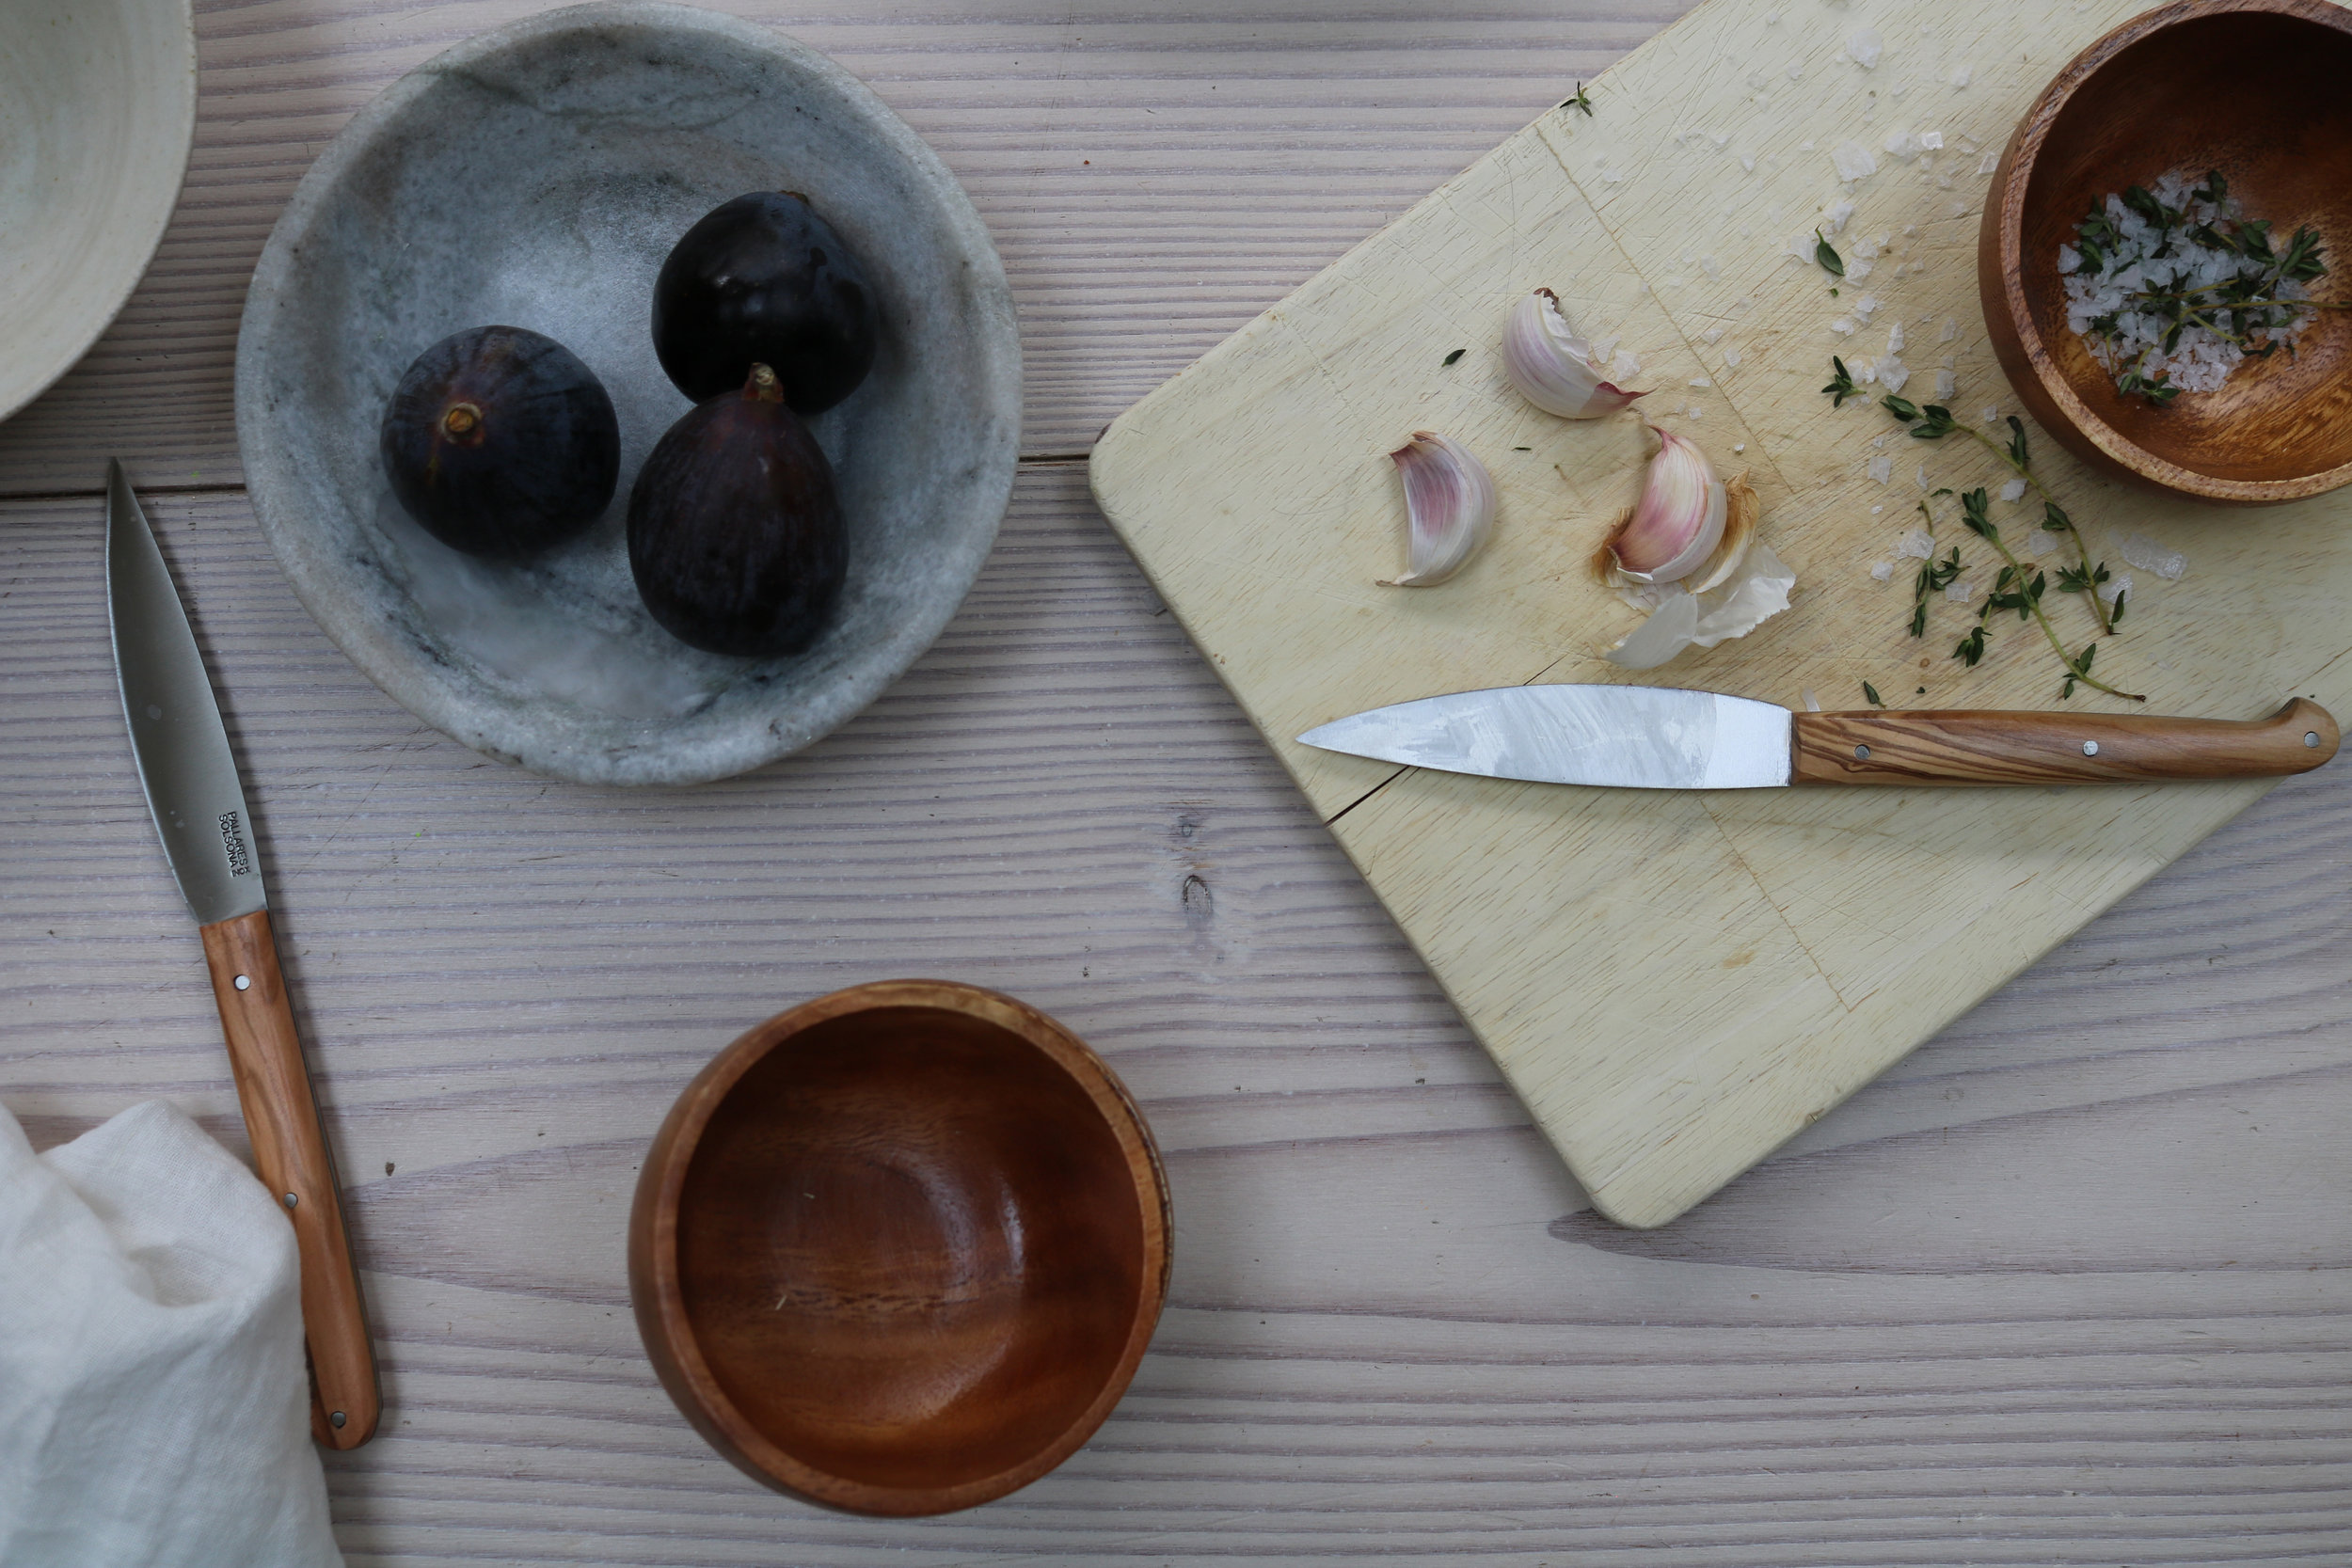 Plums and herbs a wooden table | London Lifestyle Photoshoot | Creative Direction